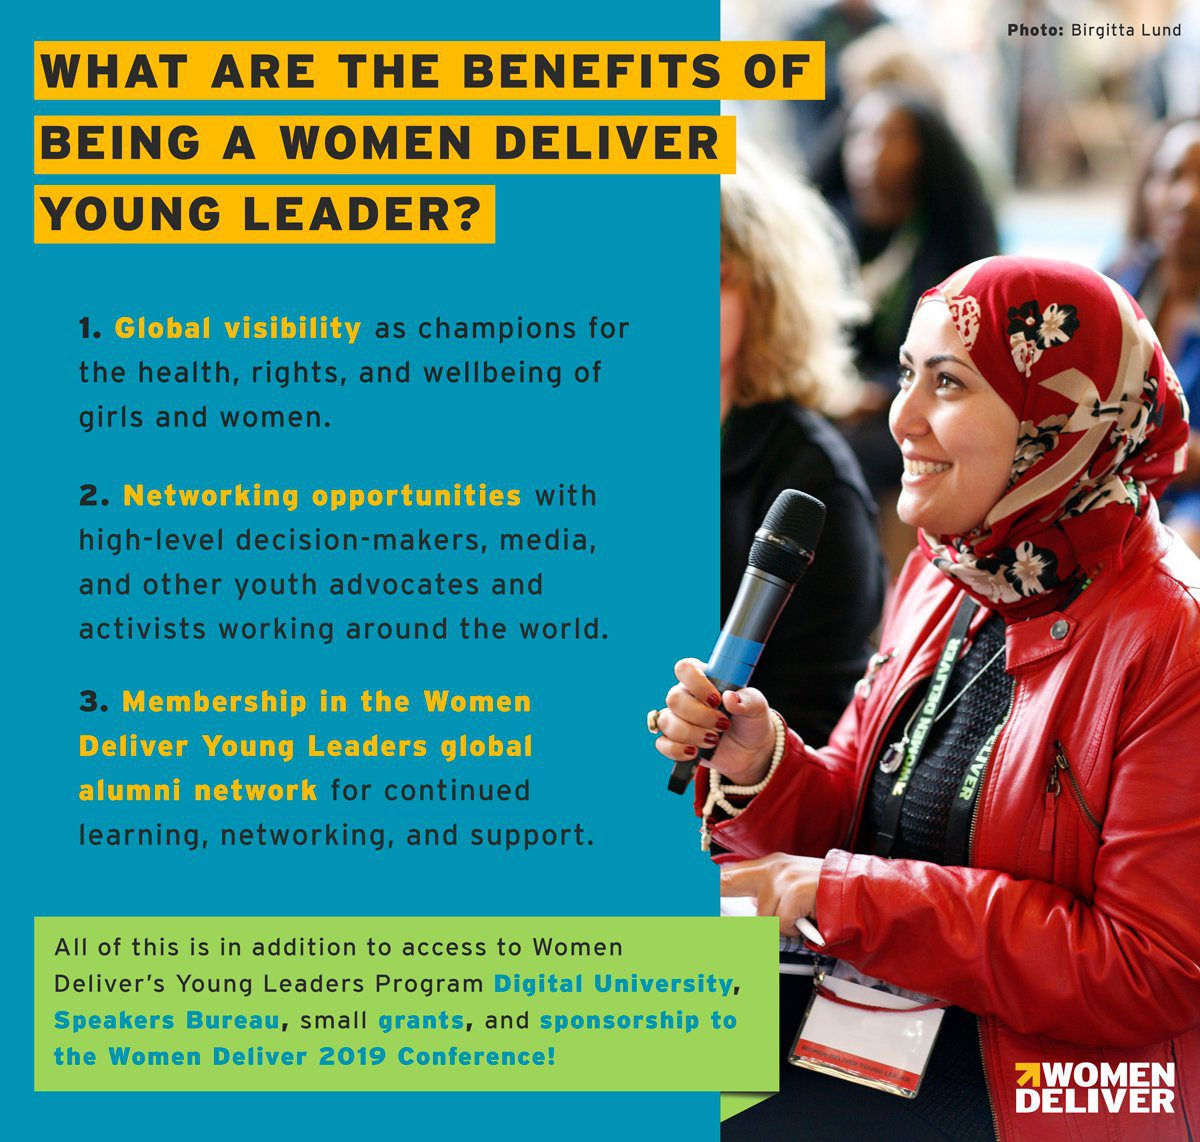 Women Deliver Young Leaders Program 2018 (full scholarship to attend Women Deliver Global Conference 2